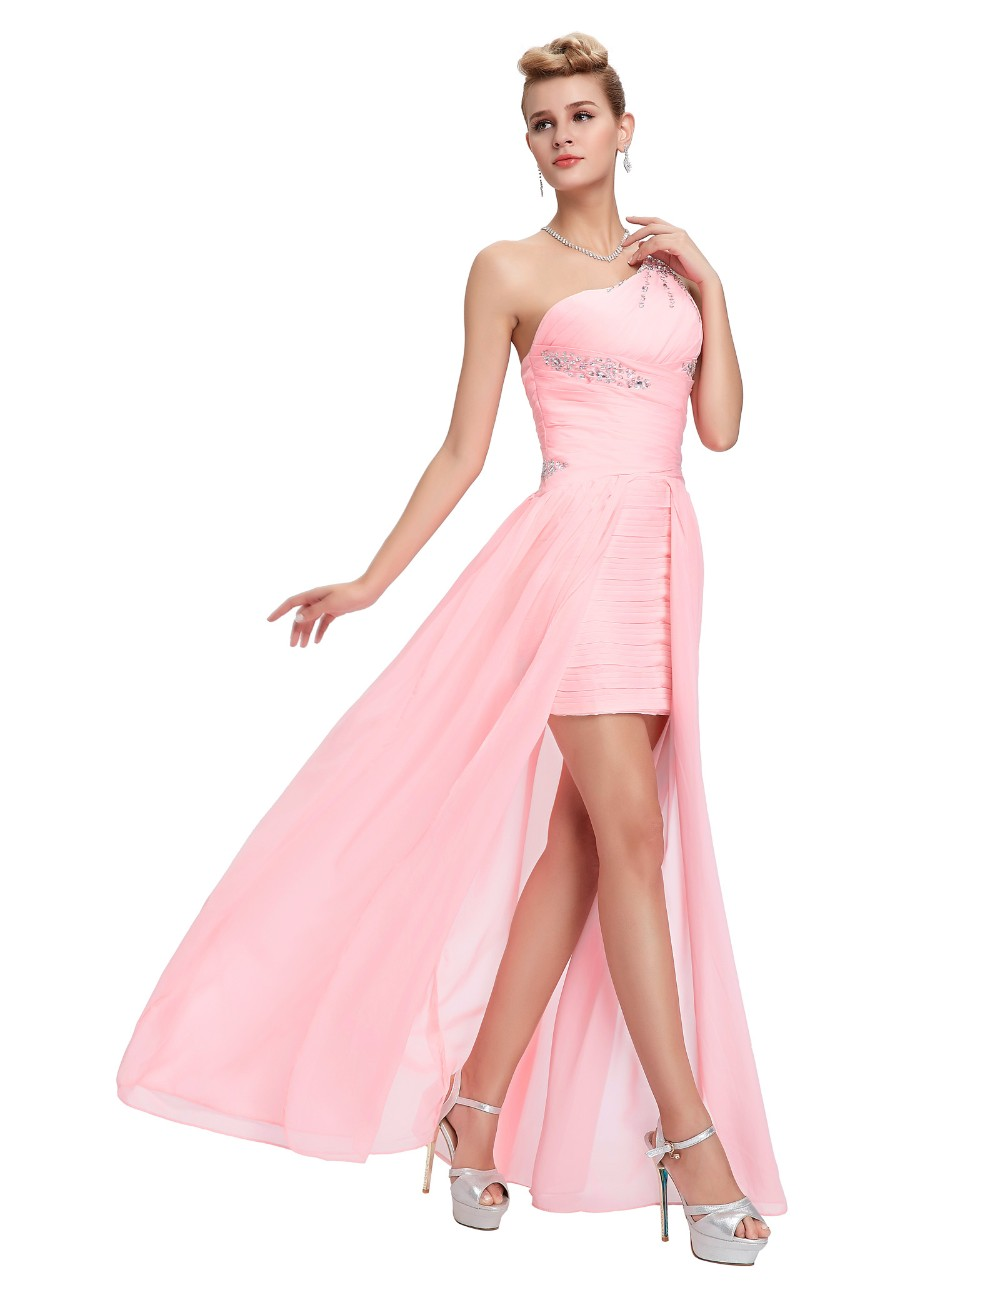 Light Pink Bridesmaid Dresses Grace Karin Beaded Chiffon One Shoulder Formal Gowns Short Front Long Back Wedding Party Dresses 10